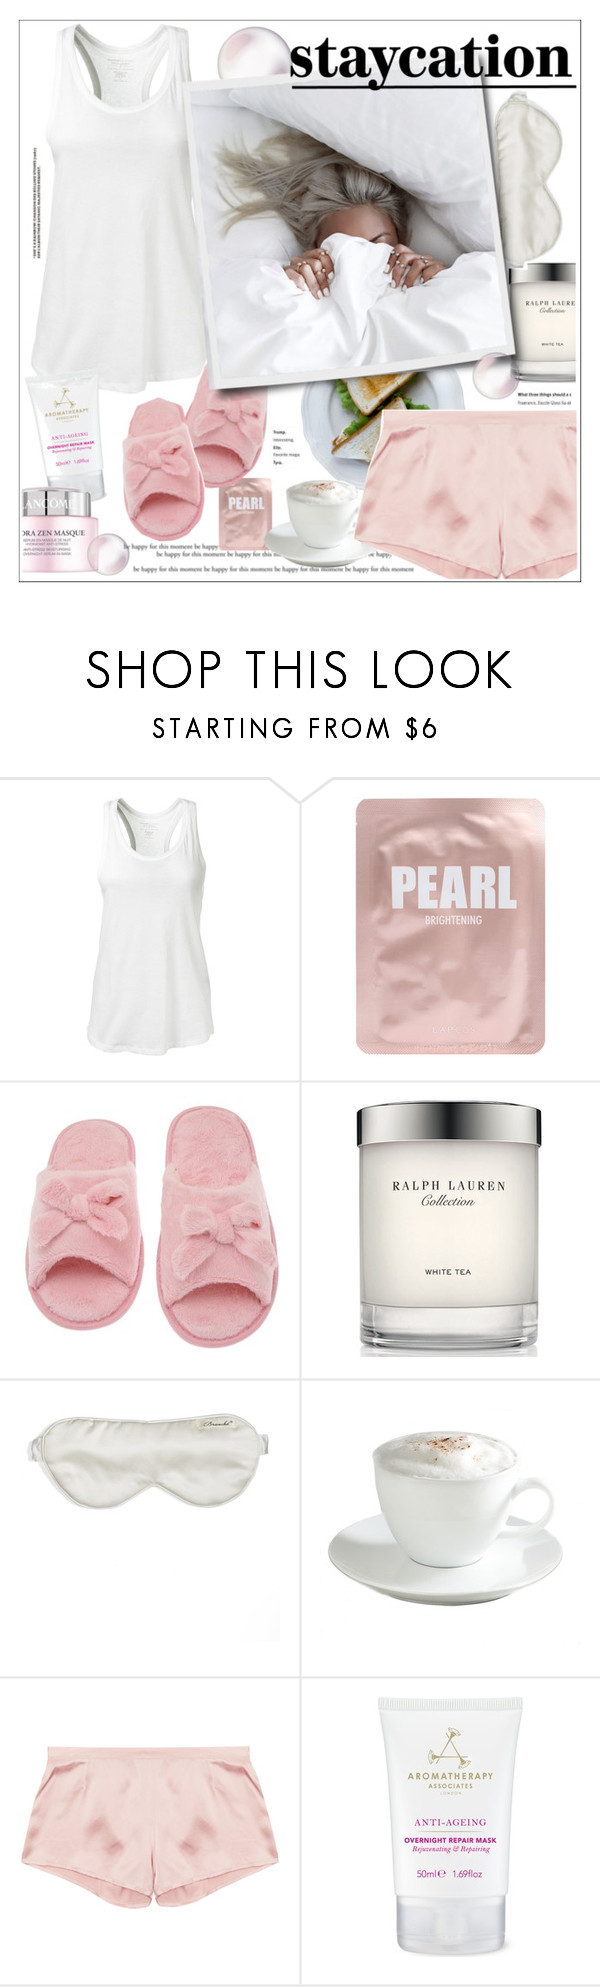 """#staycation"" by stylemeup-649 ❤ liked on Polyvore featuring Majestic Filatures, Lapcos, Deluxe Comfort, Ralph Lauren, Branché, Sur La Table, Aromatherapy Associates and Lancôme"